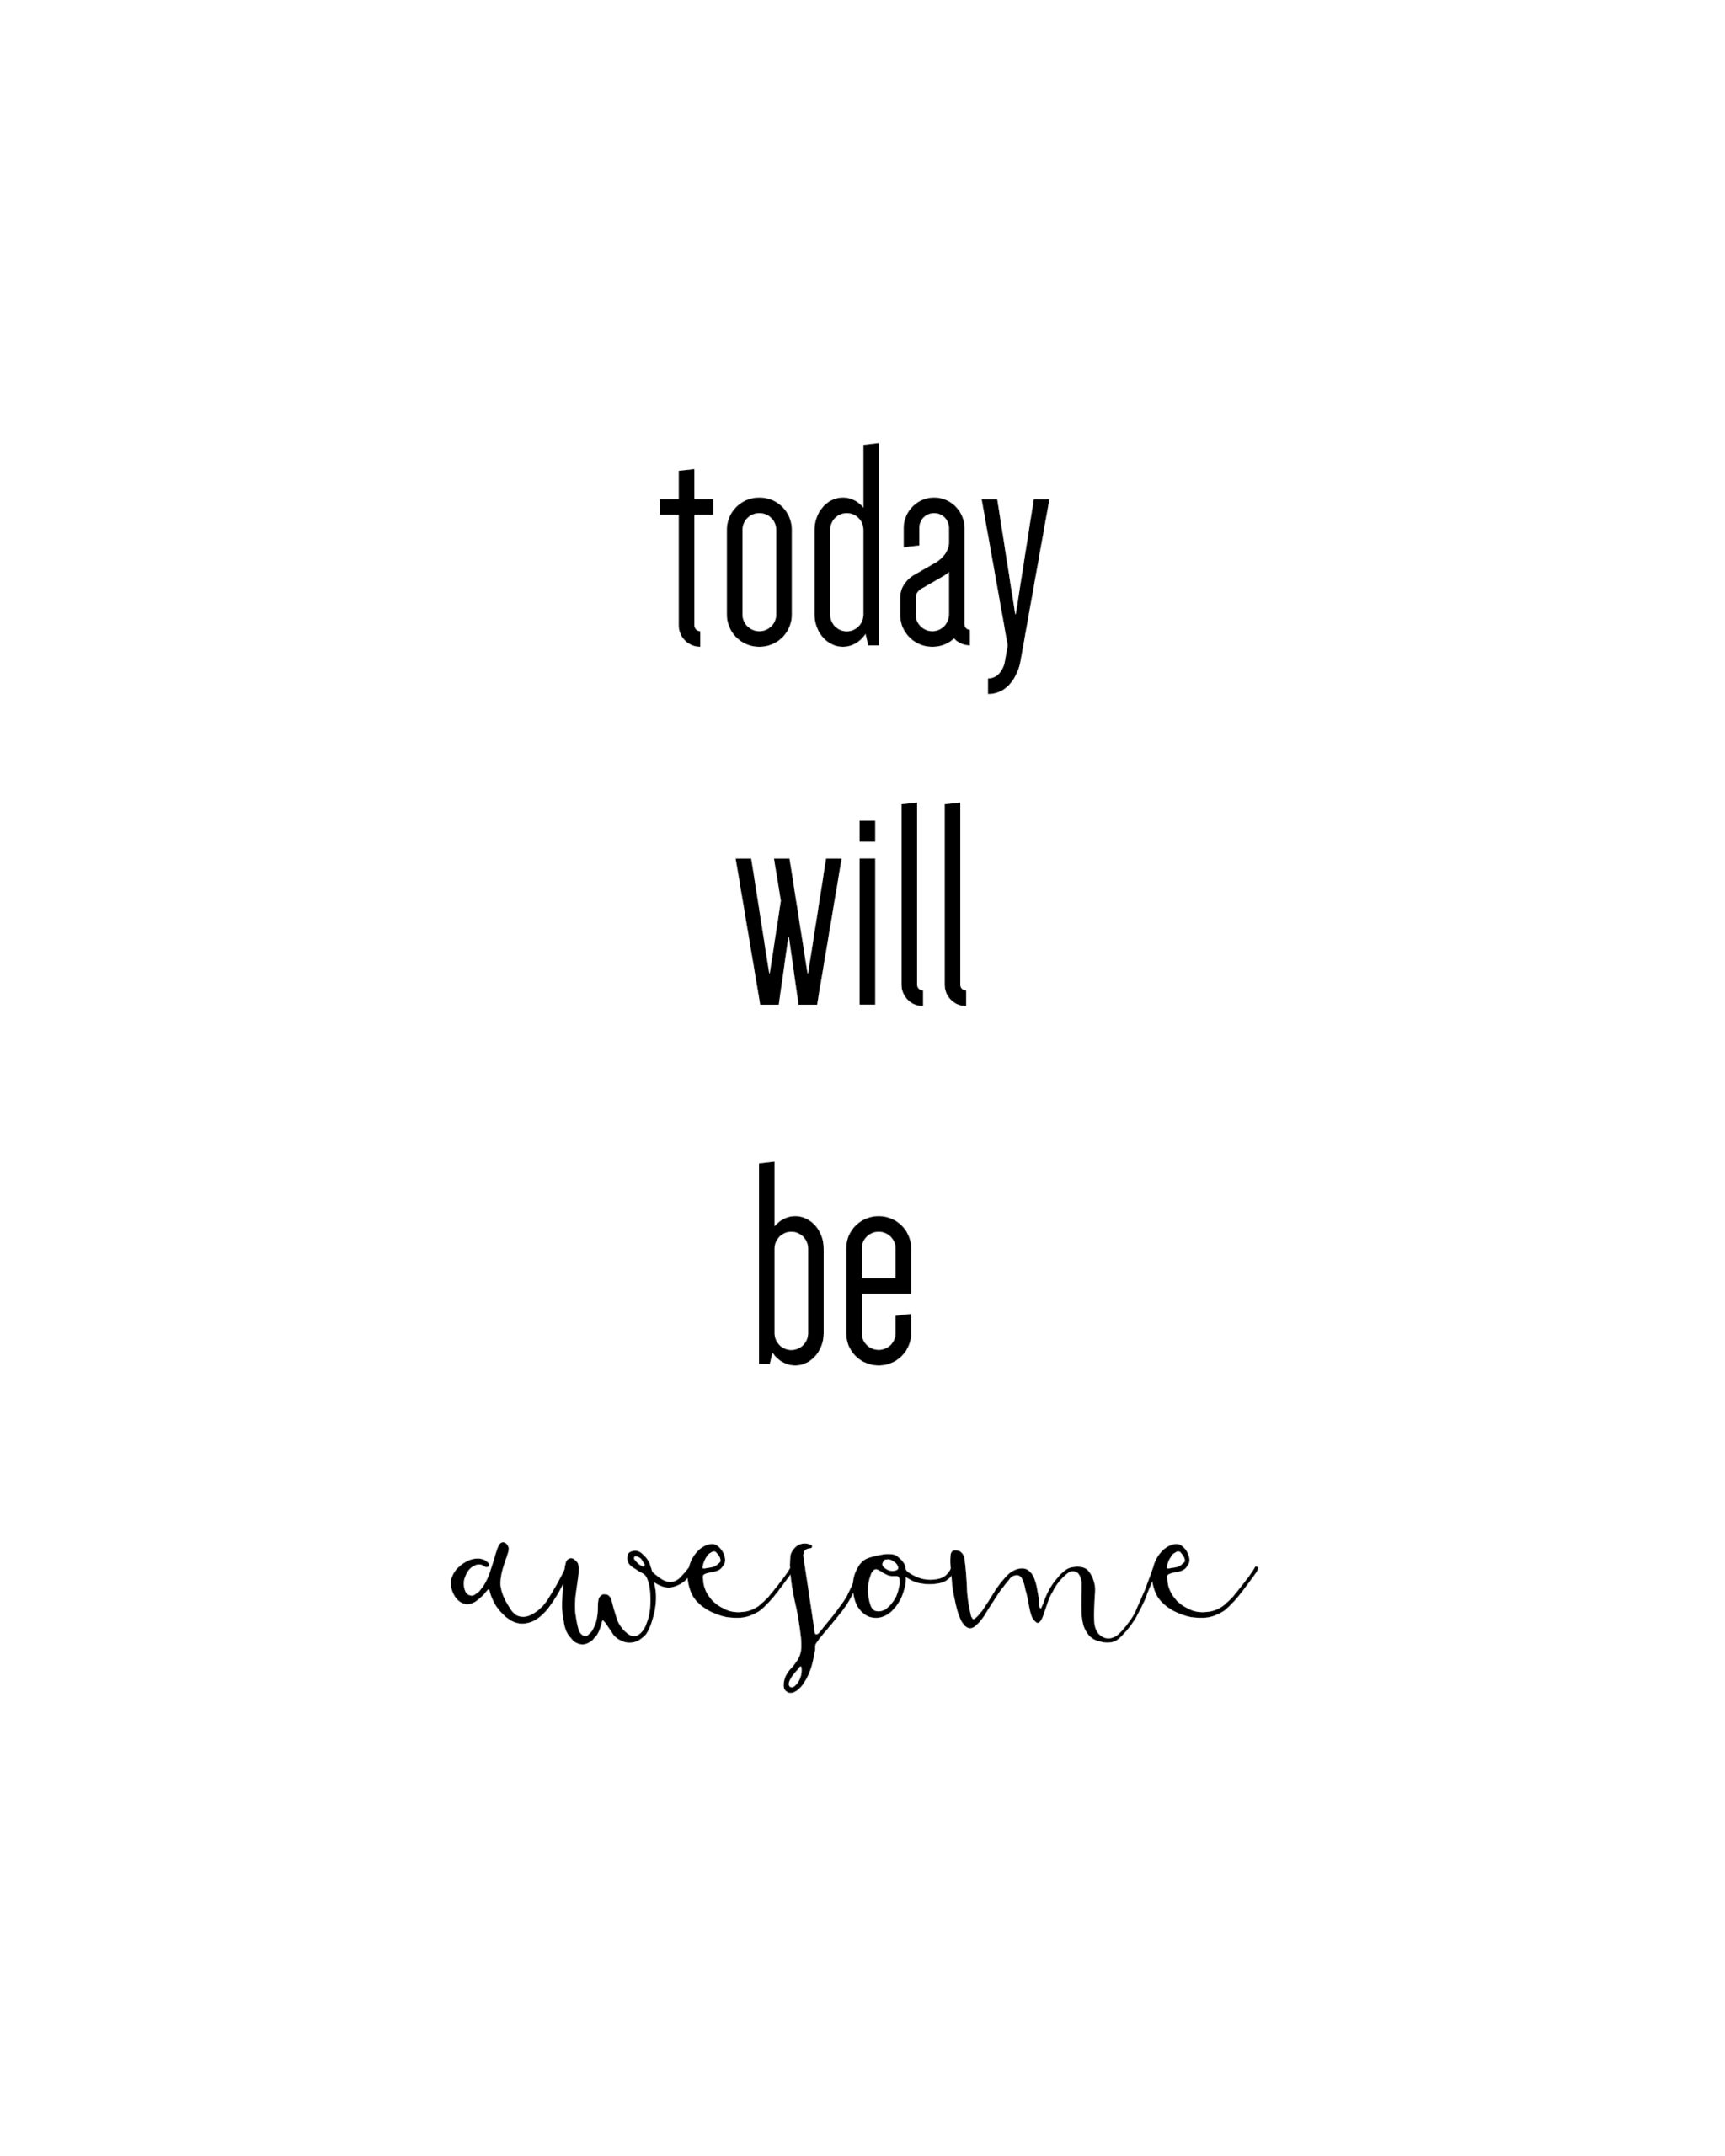 Today Will be Awesome